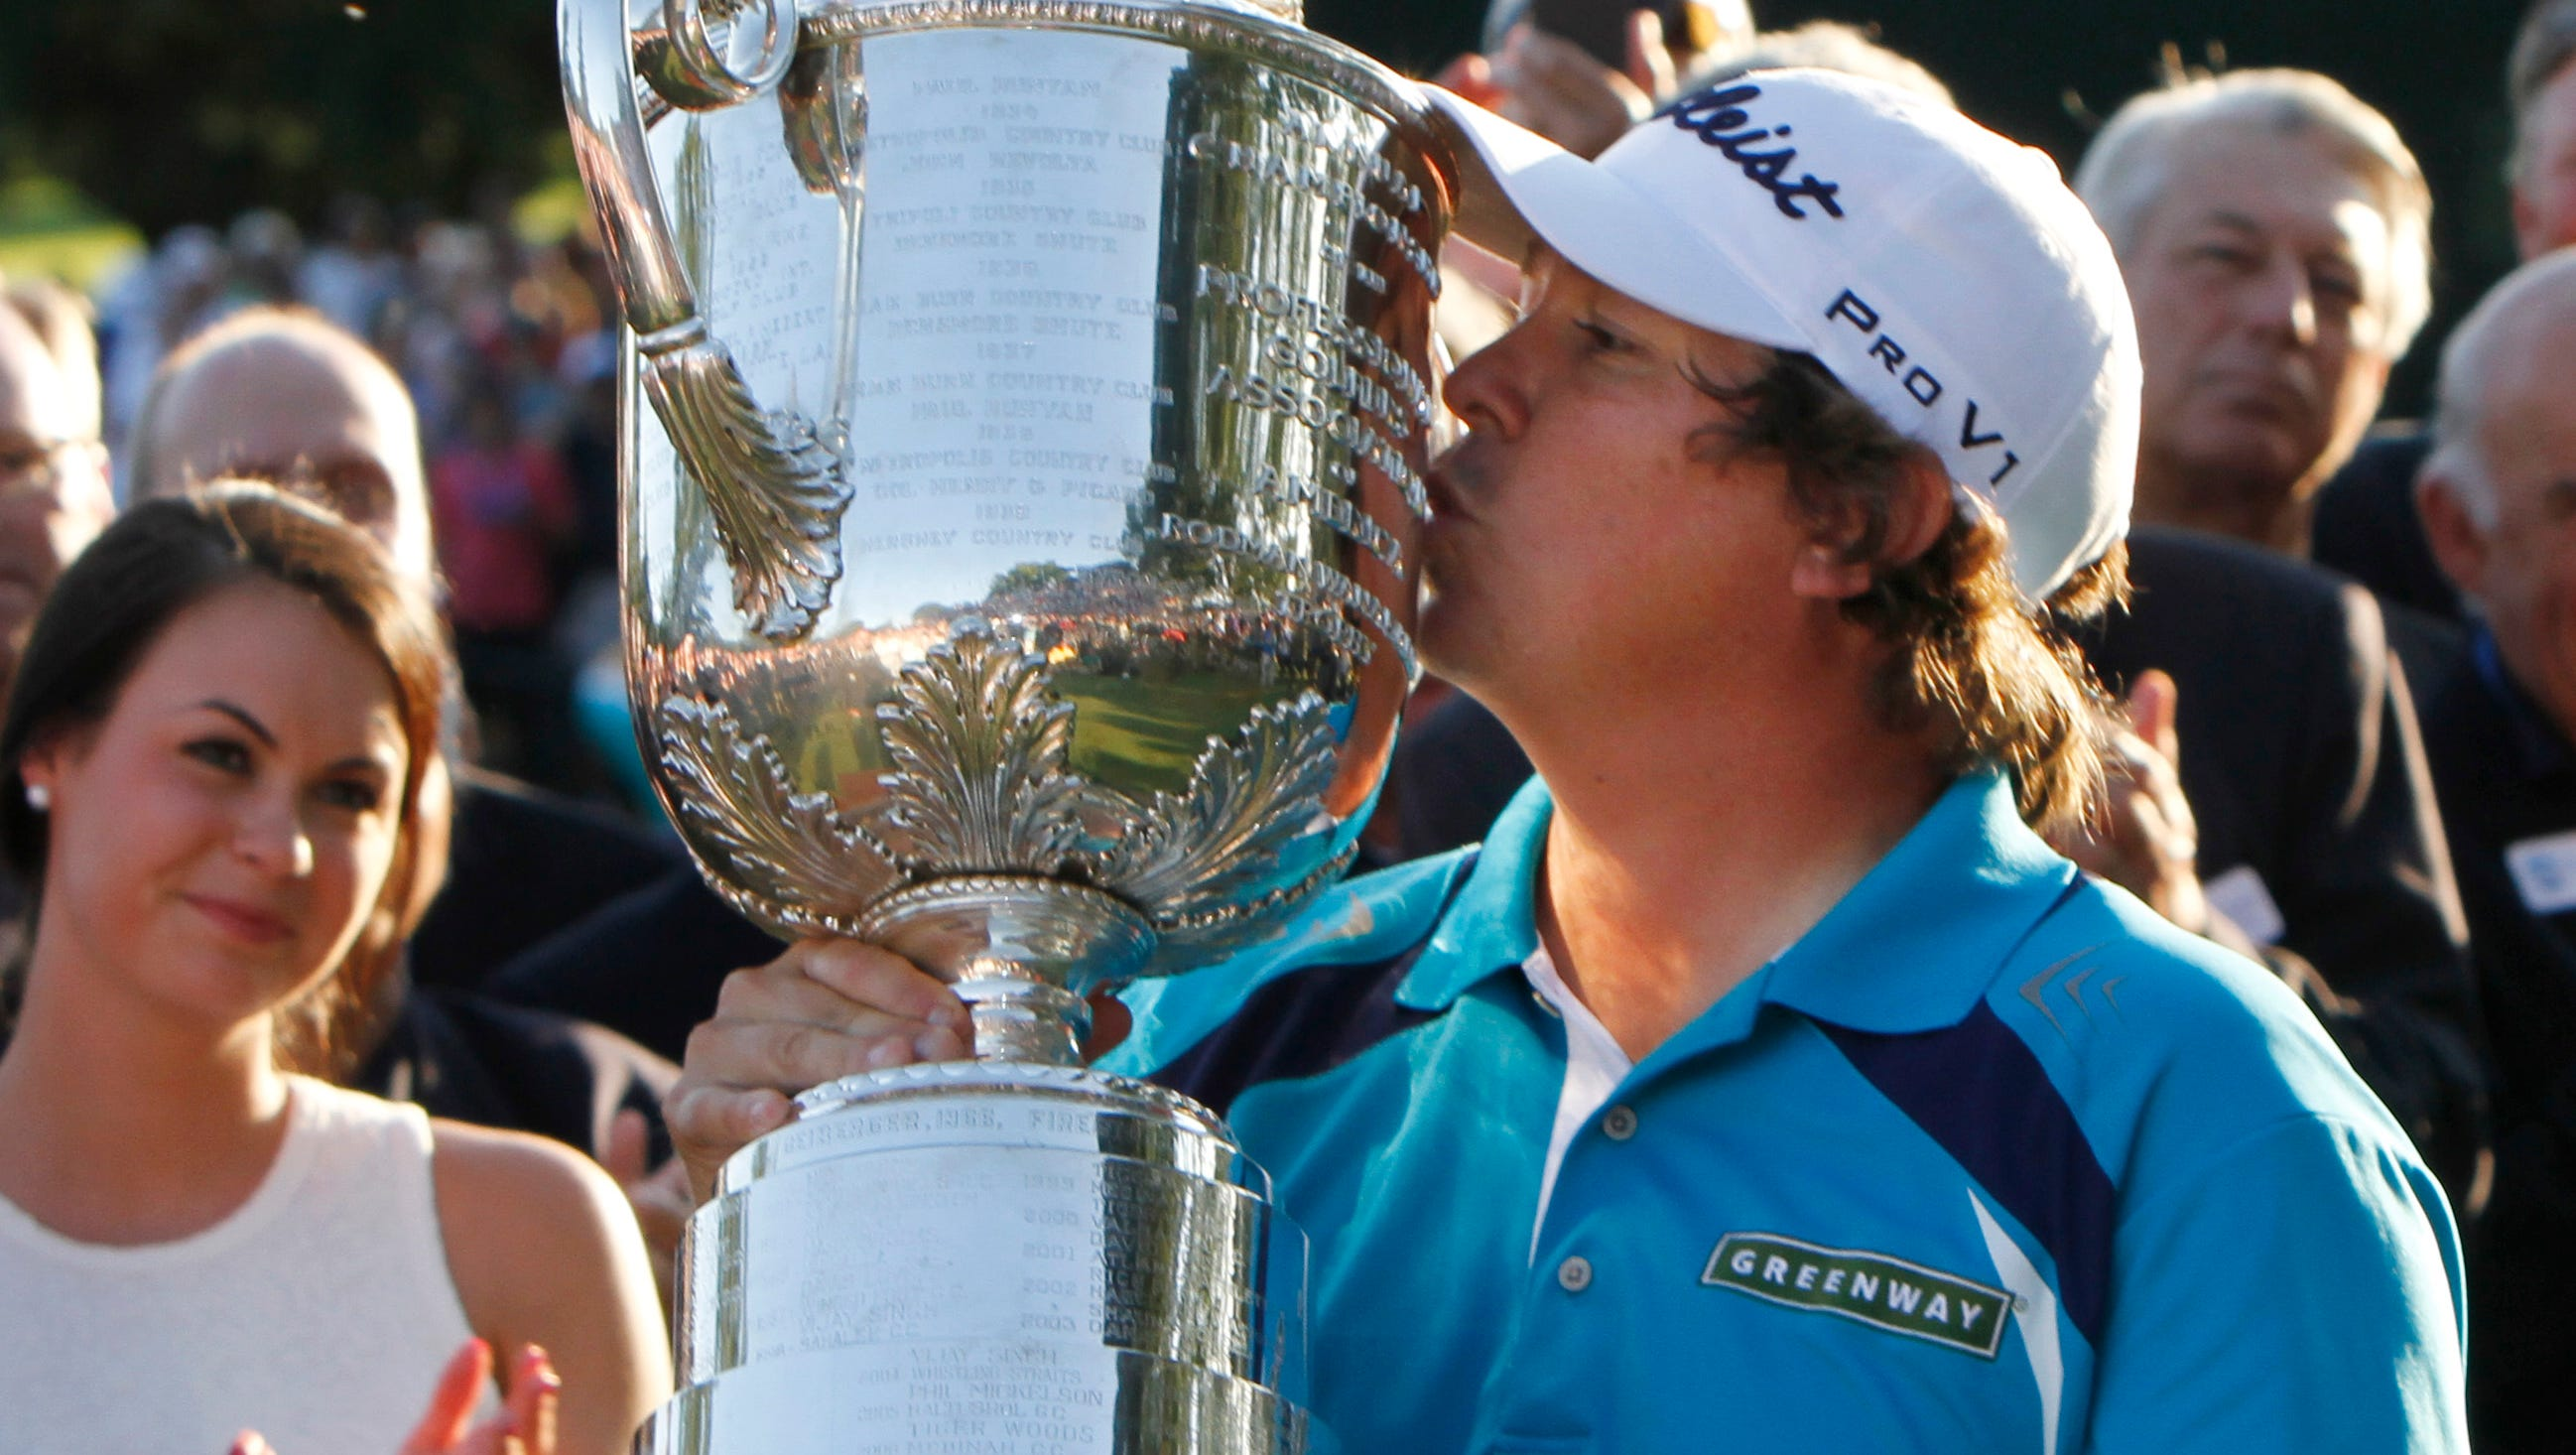 Jason Dufner kisses the Wanamaker Trophy as wife Amanda looks on following his two stroke victory at the final round of the 95th PGA Championship Sunday, Aug. 11, 2013 at Oak Hill Country Club in Pittsford.